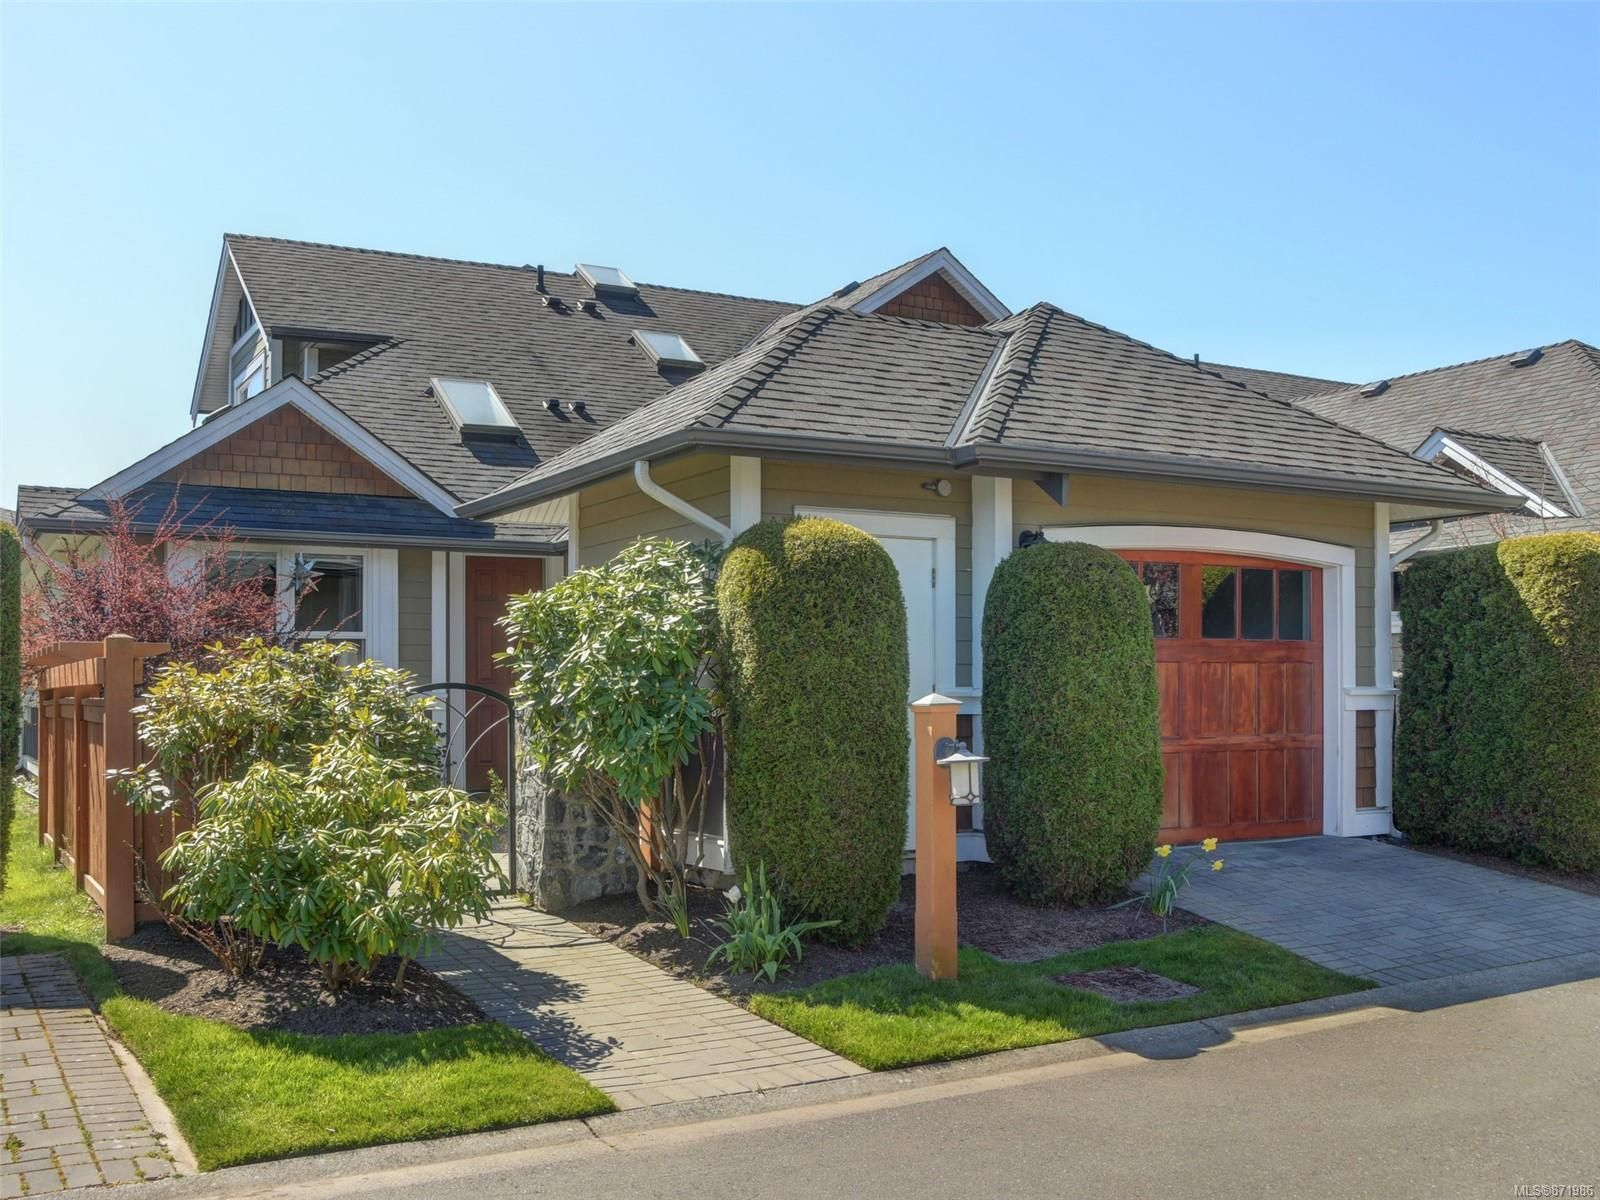 Main Photo: 17 10520 McDonald Park Rd in : NS McDonald Park Row/Townhouse for sale (North Saanich)  : MLS®# 871986